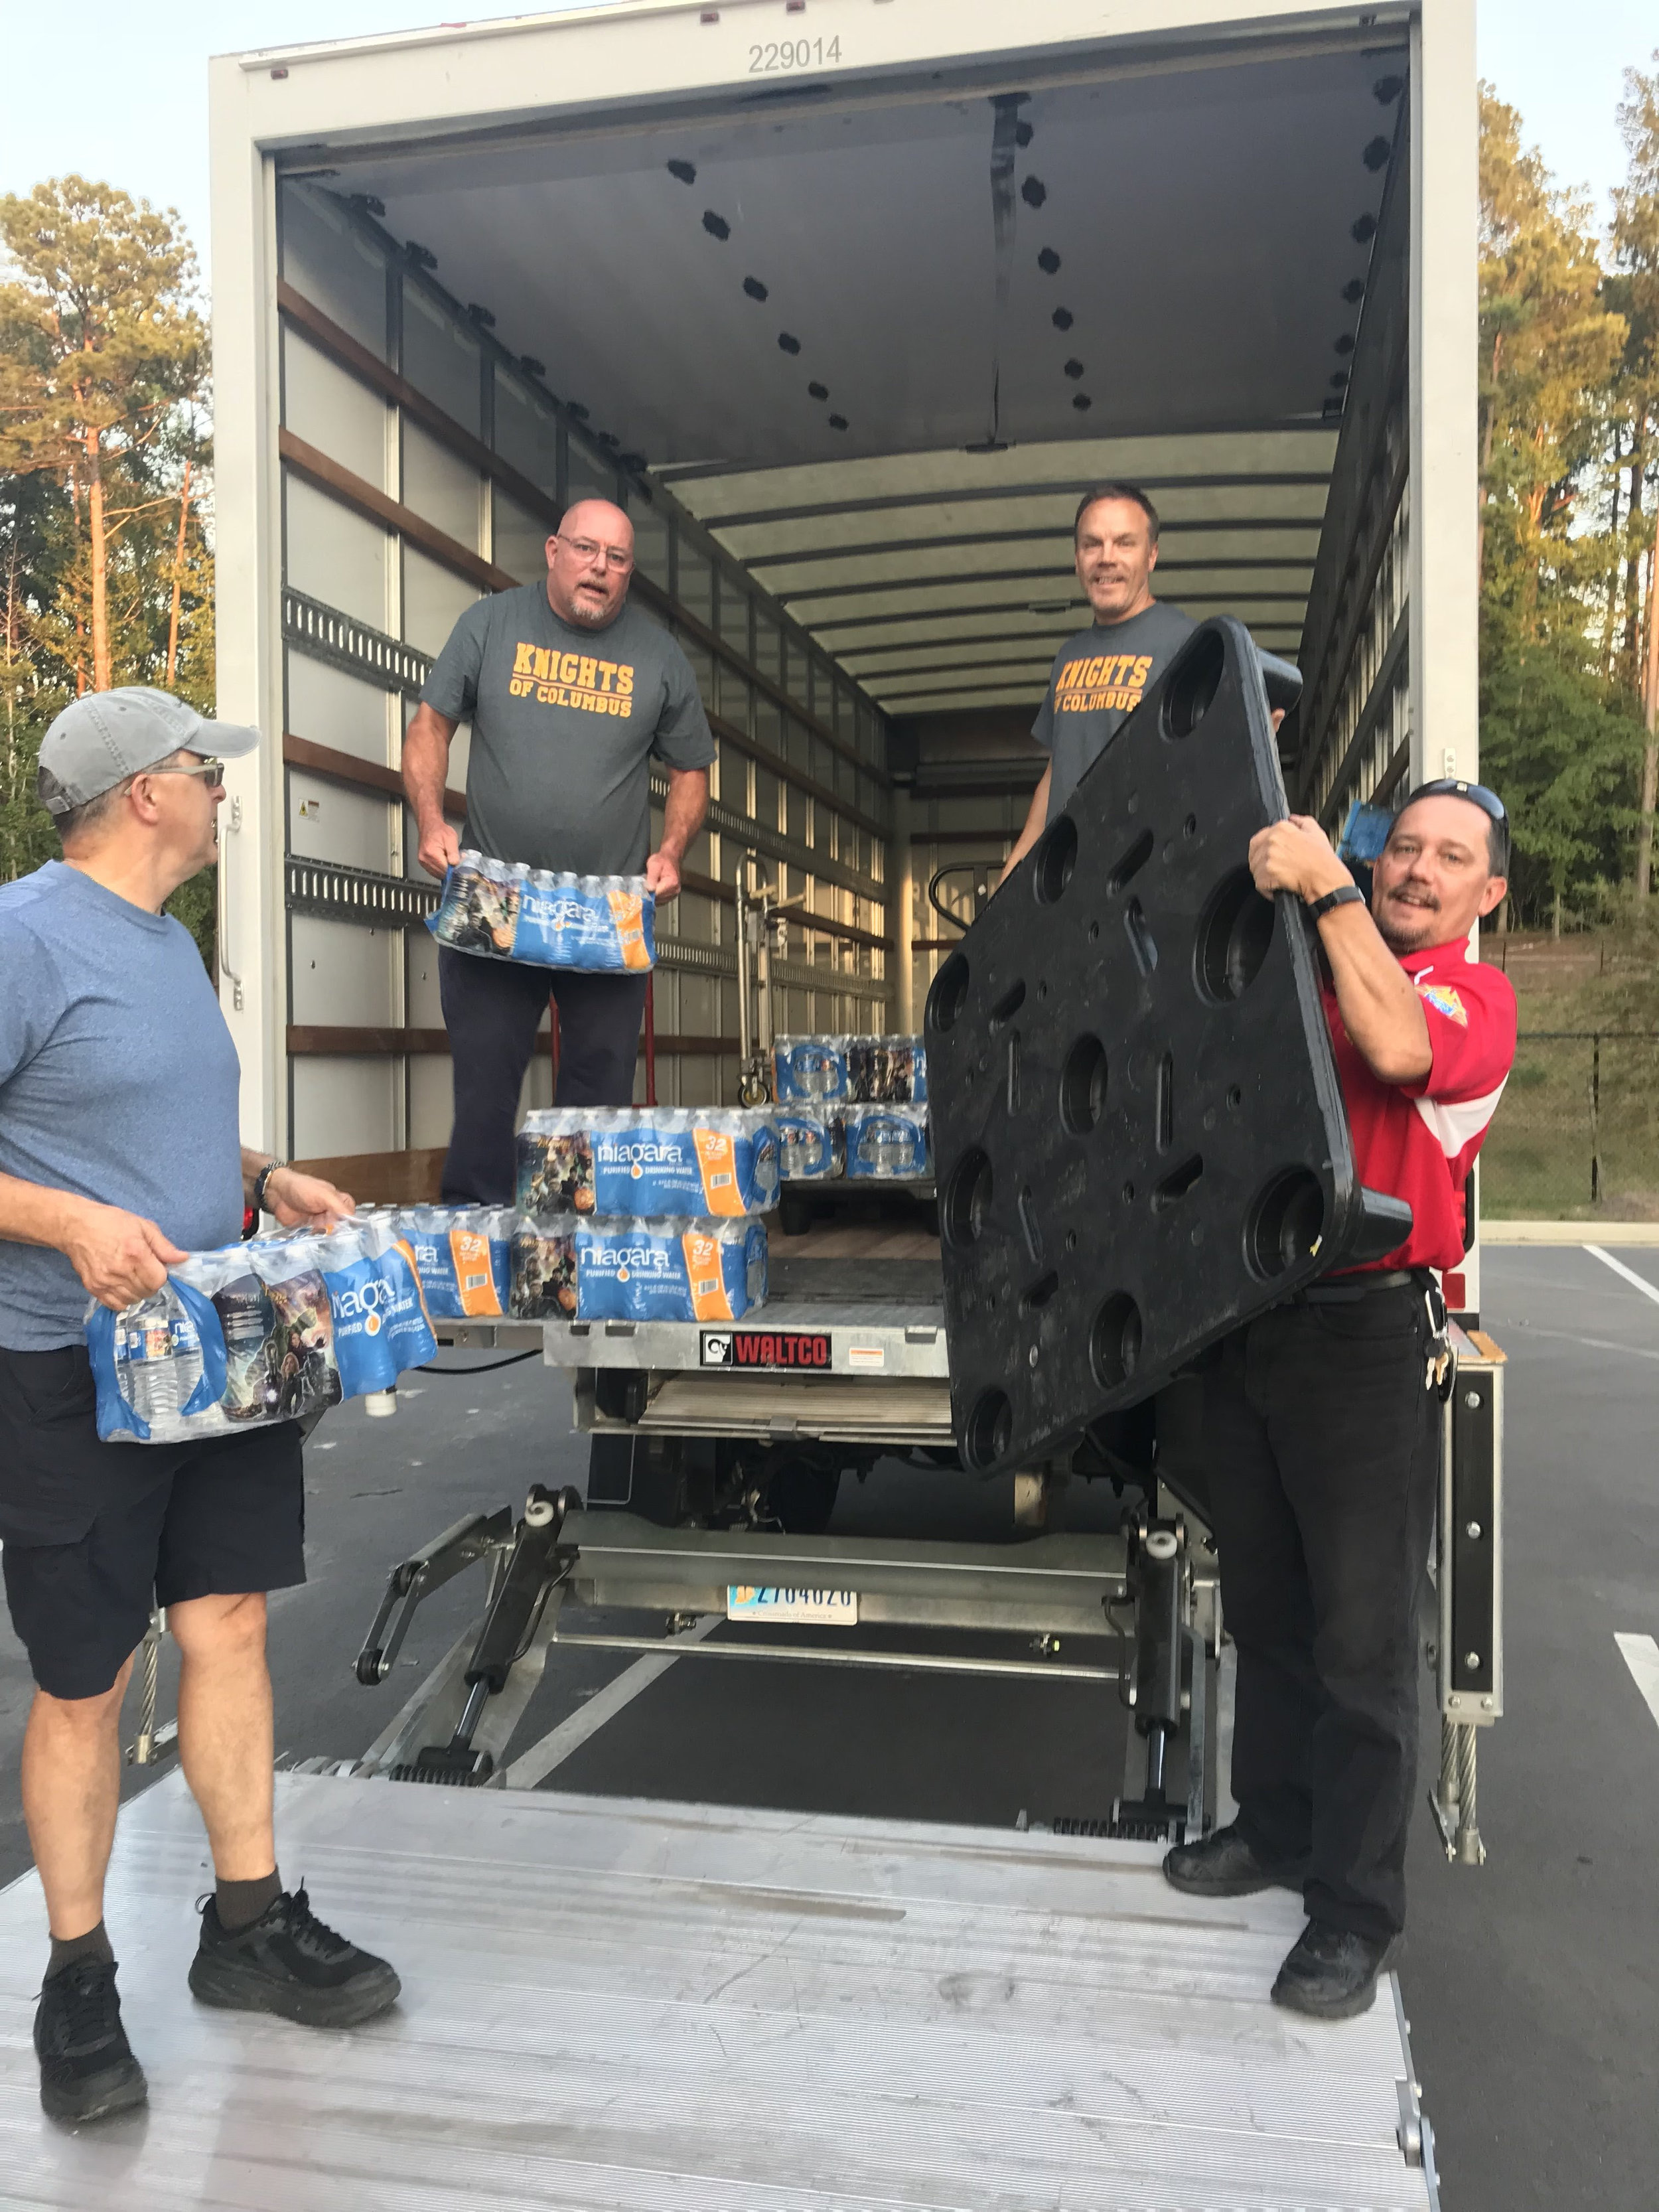 Council 7186 Grand Knight Tom Blum and NC State Advocate Chris Losack (Council 7186 member) help load a truck of supplies.